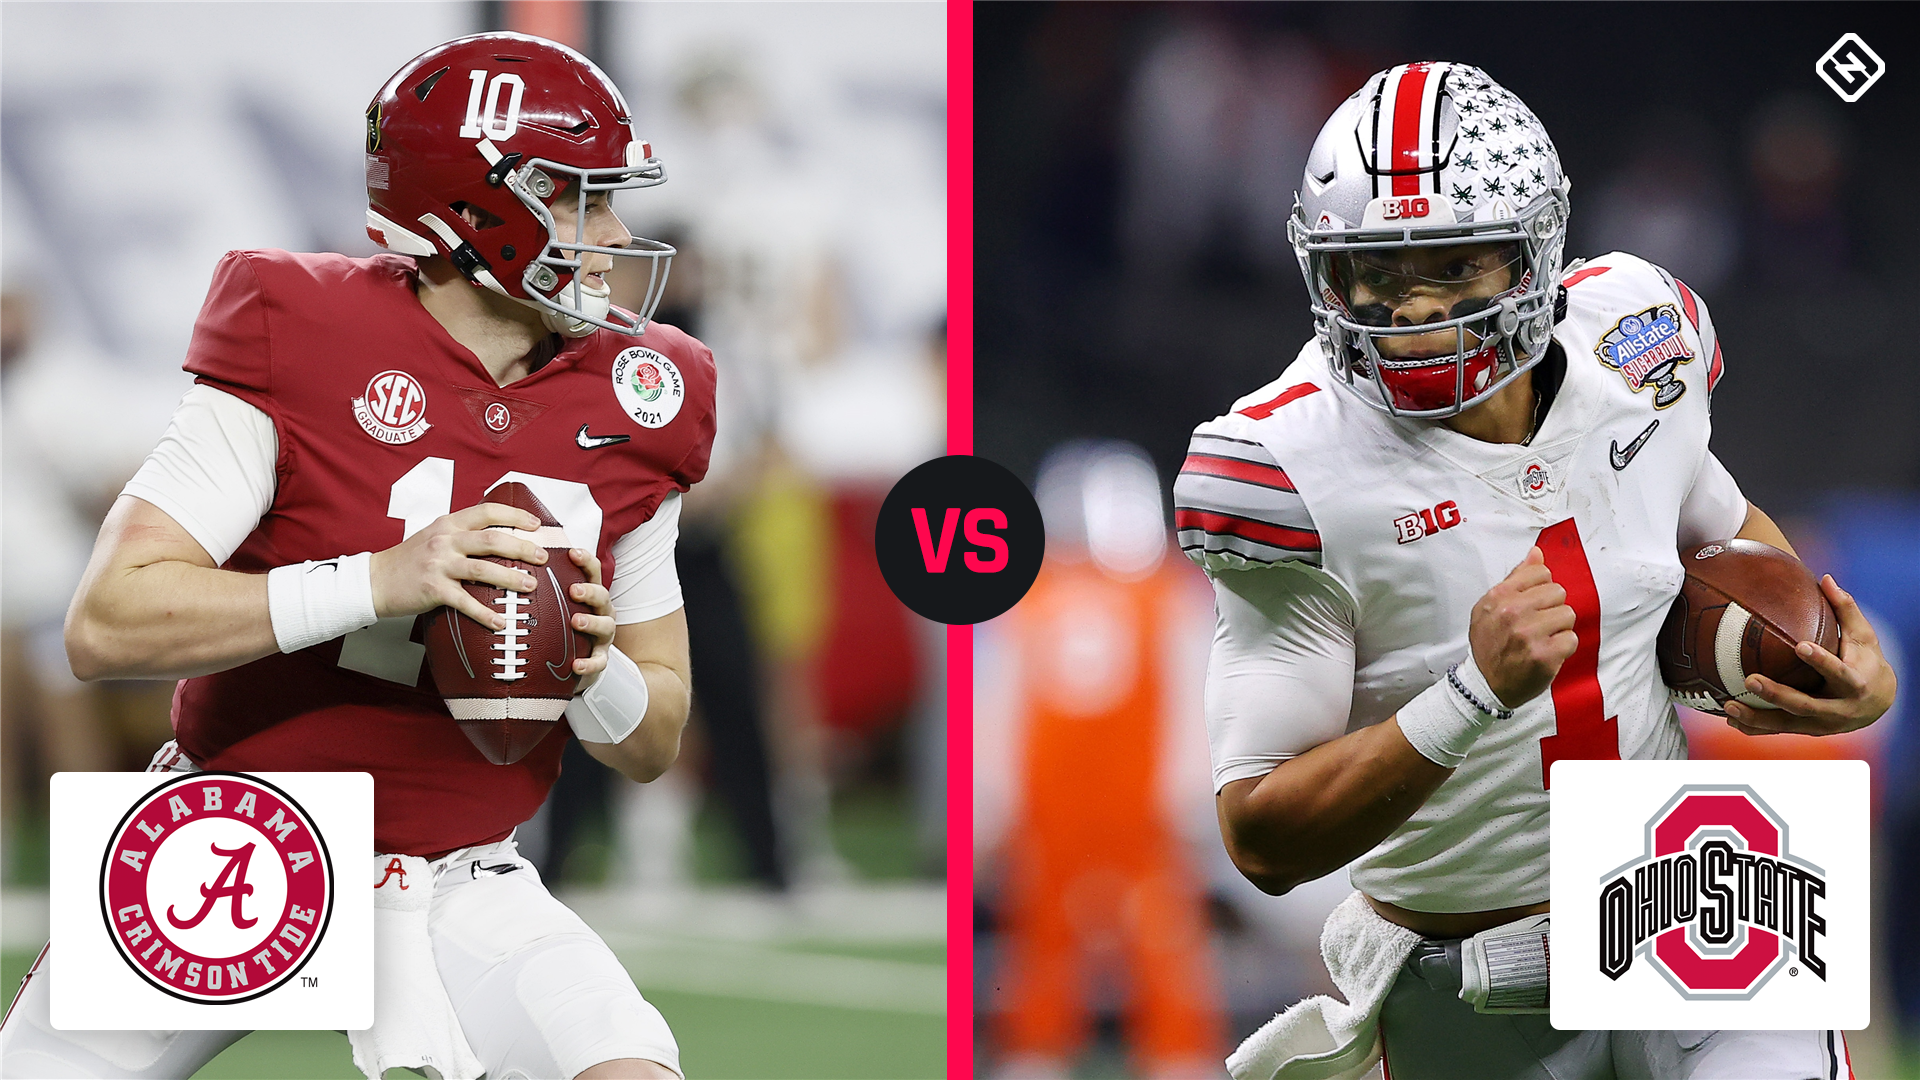 Alabama vs. Ohio State odds, predictions, betting trends for College Football Playoff championship 1